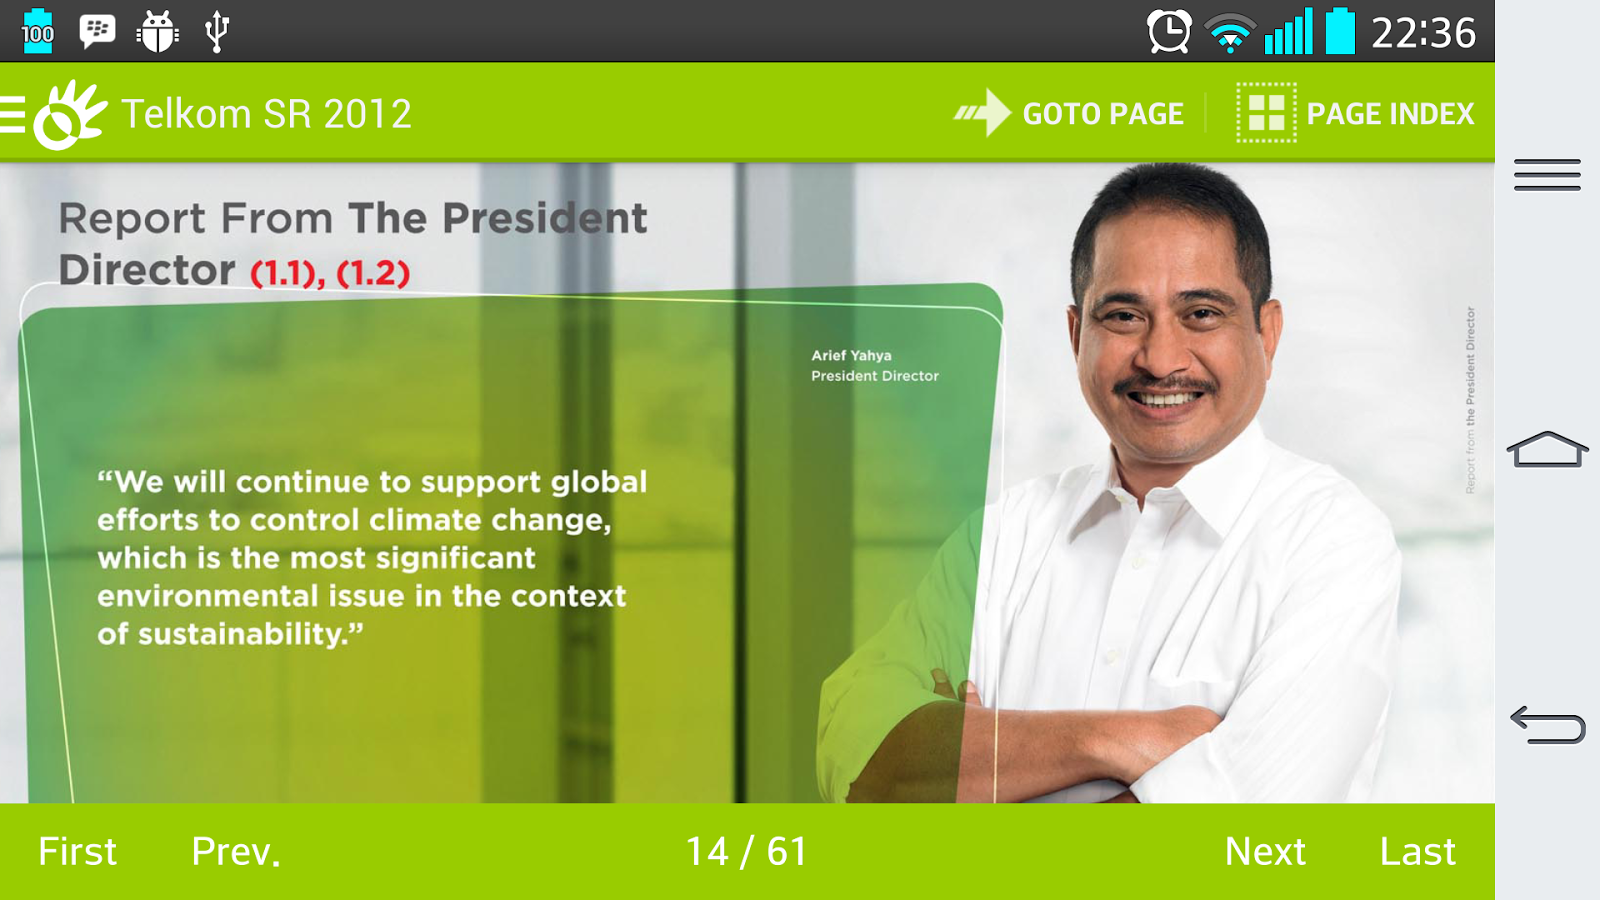 Telkom SR 2012 (English) - screenshot